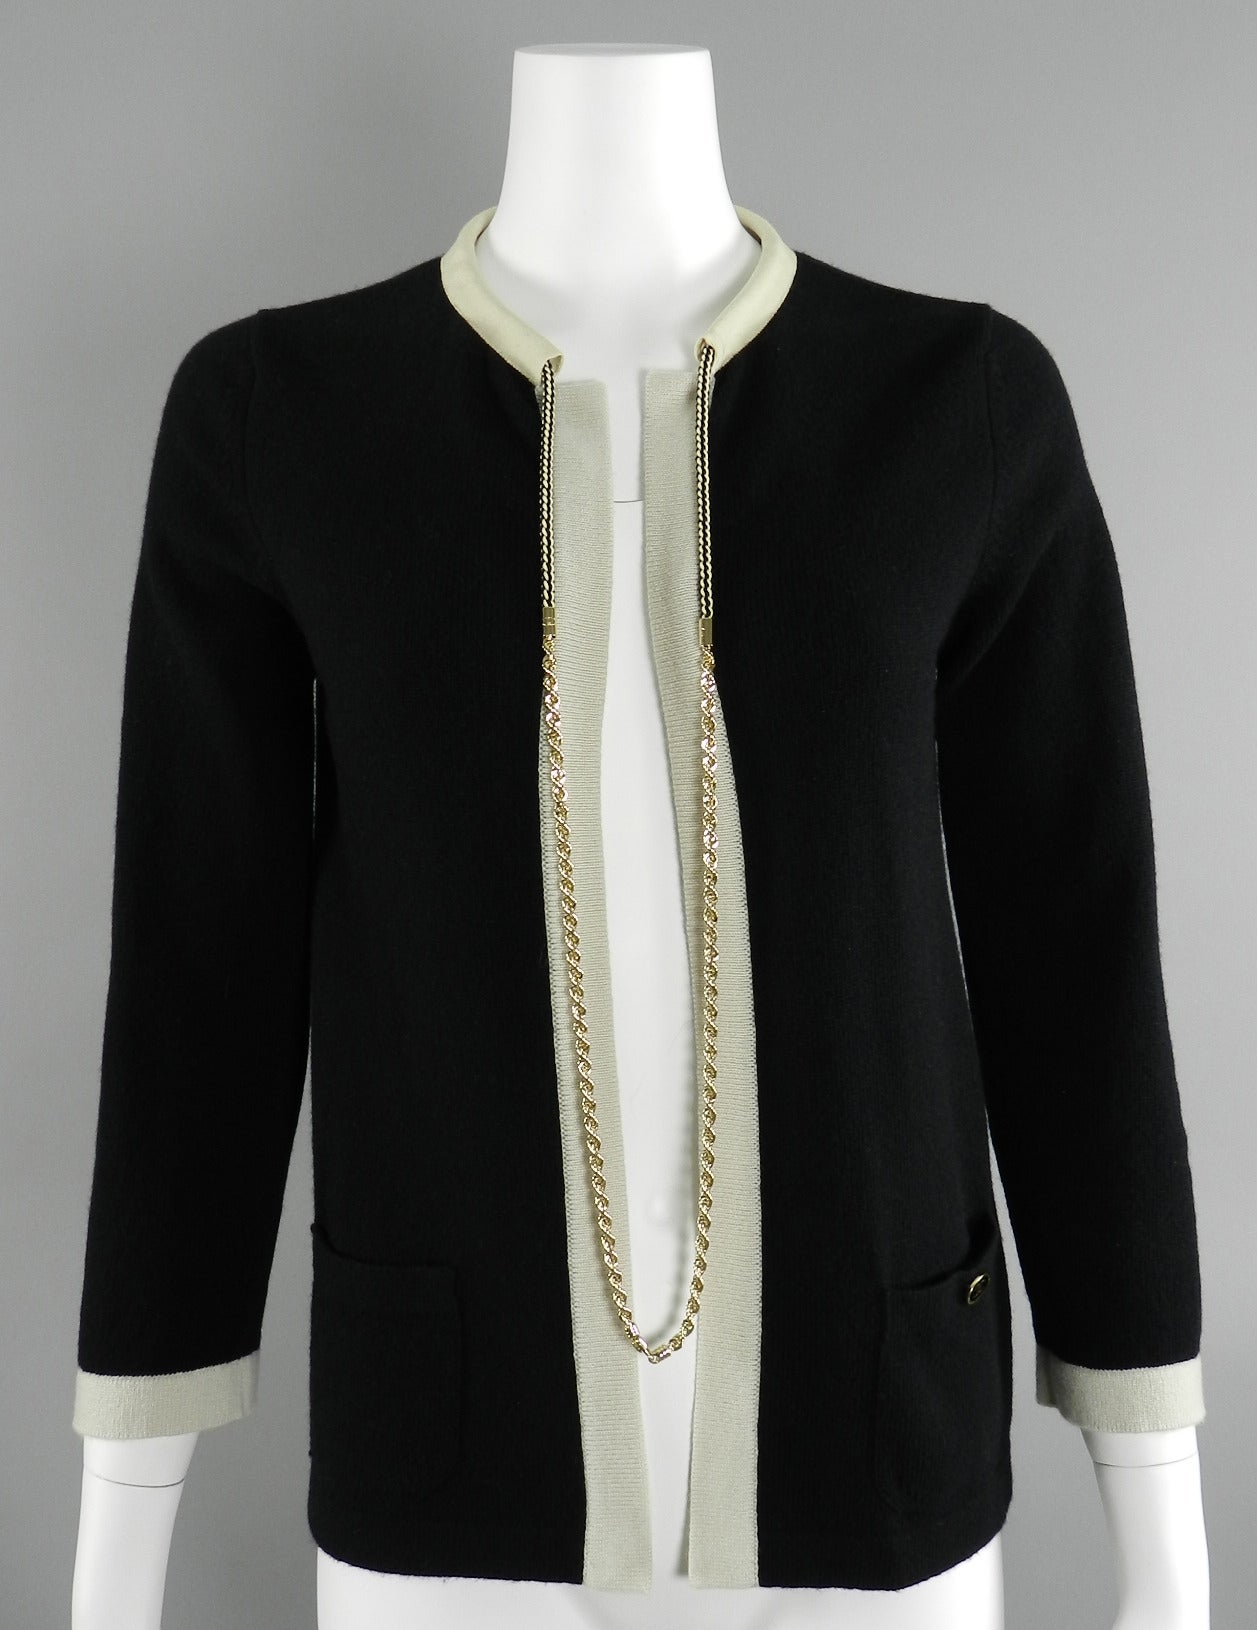 Chanel 11P Black Cashmere Cardigan with Gold Chain 5